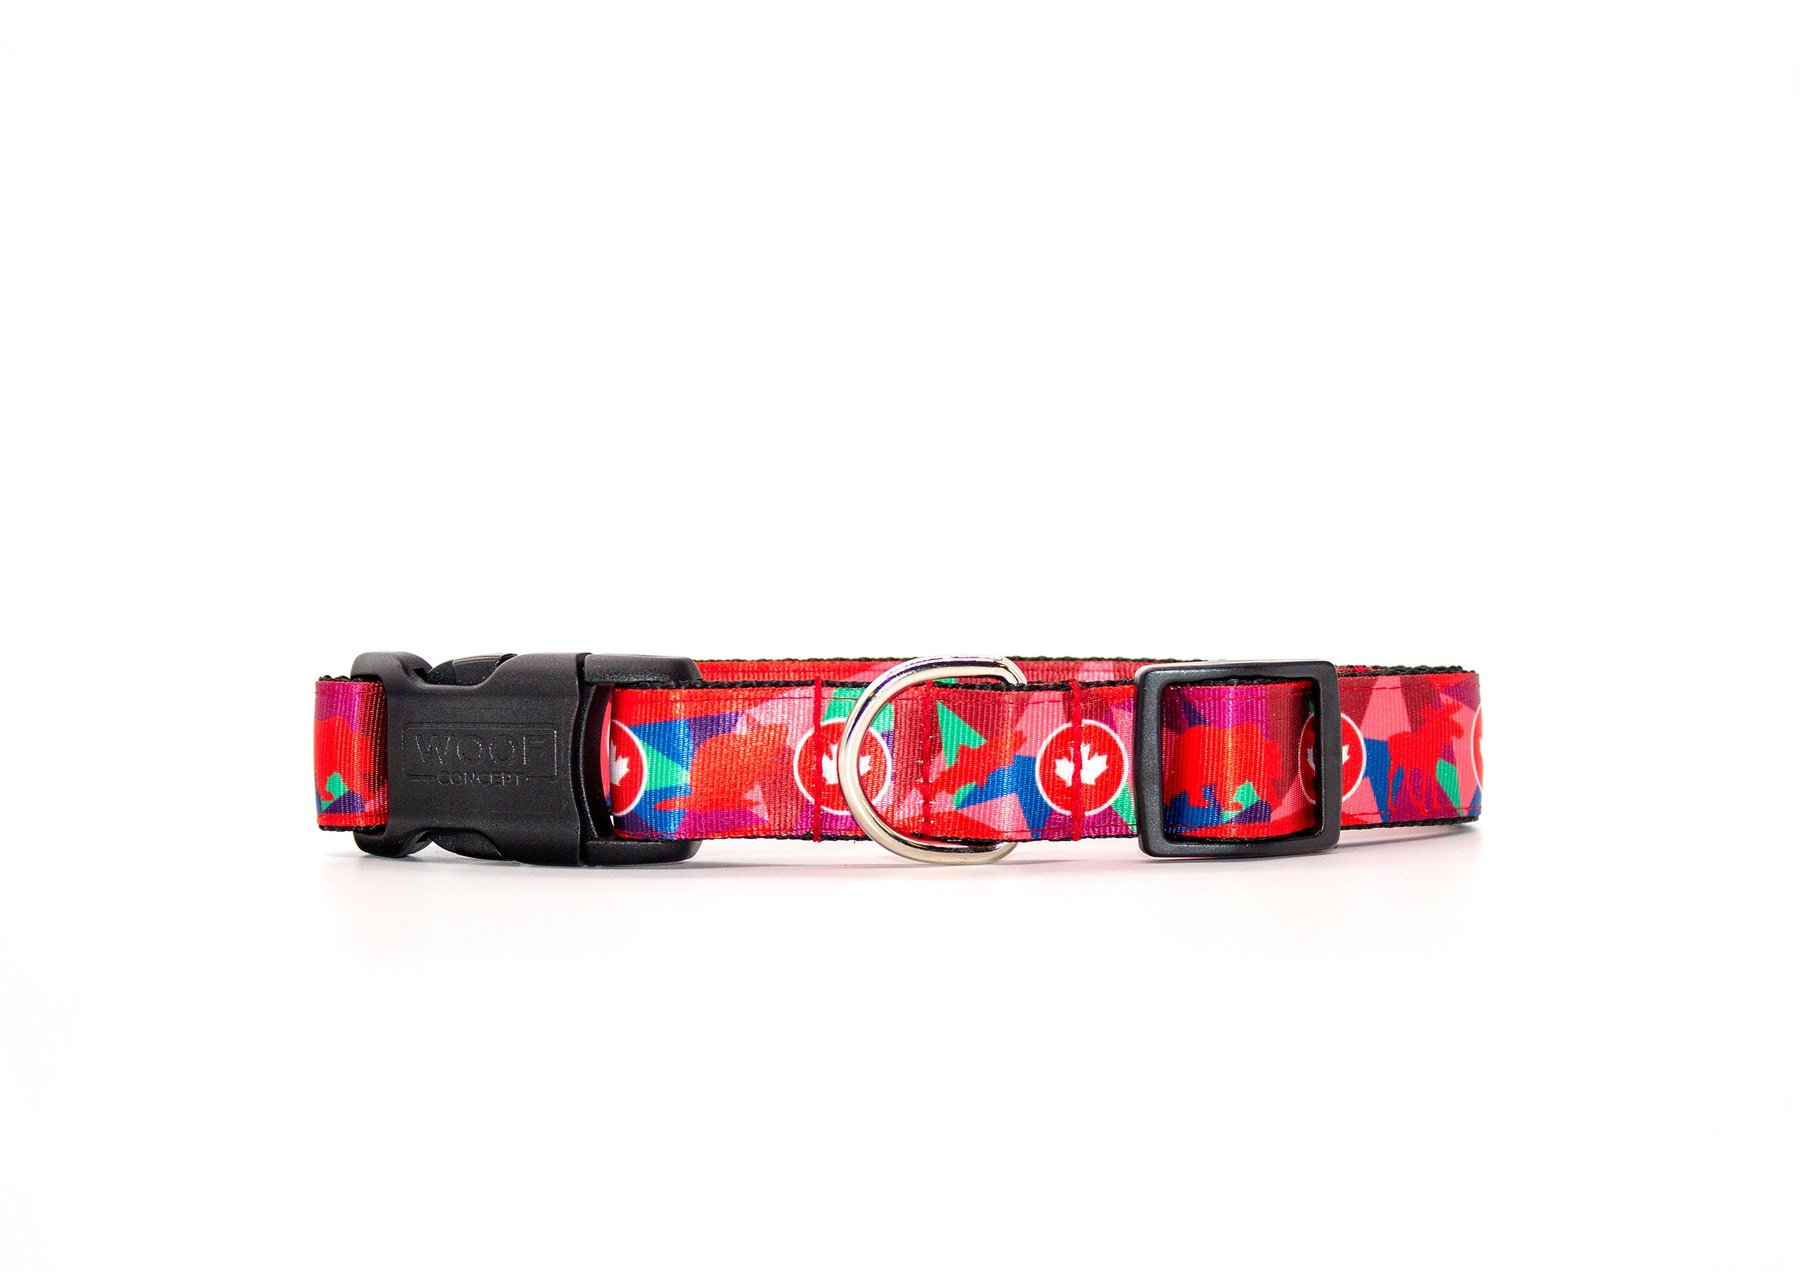 Woof Concept Dog Collar, True North Image